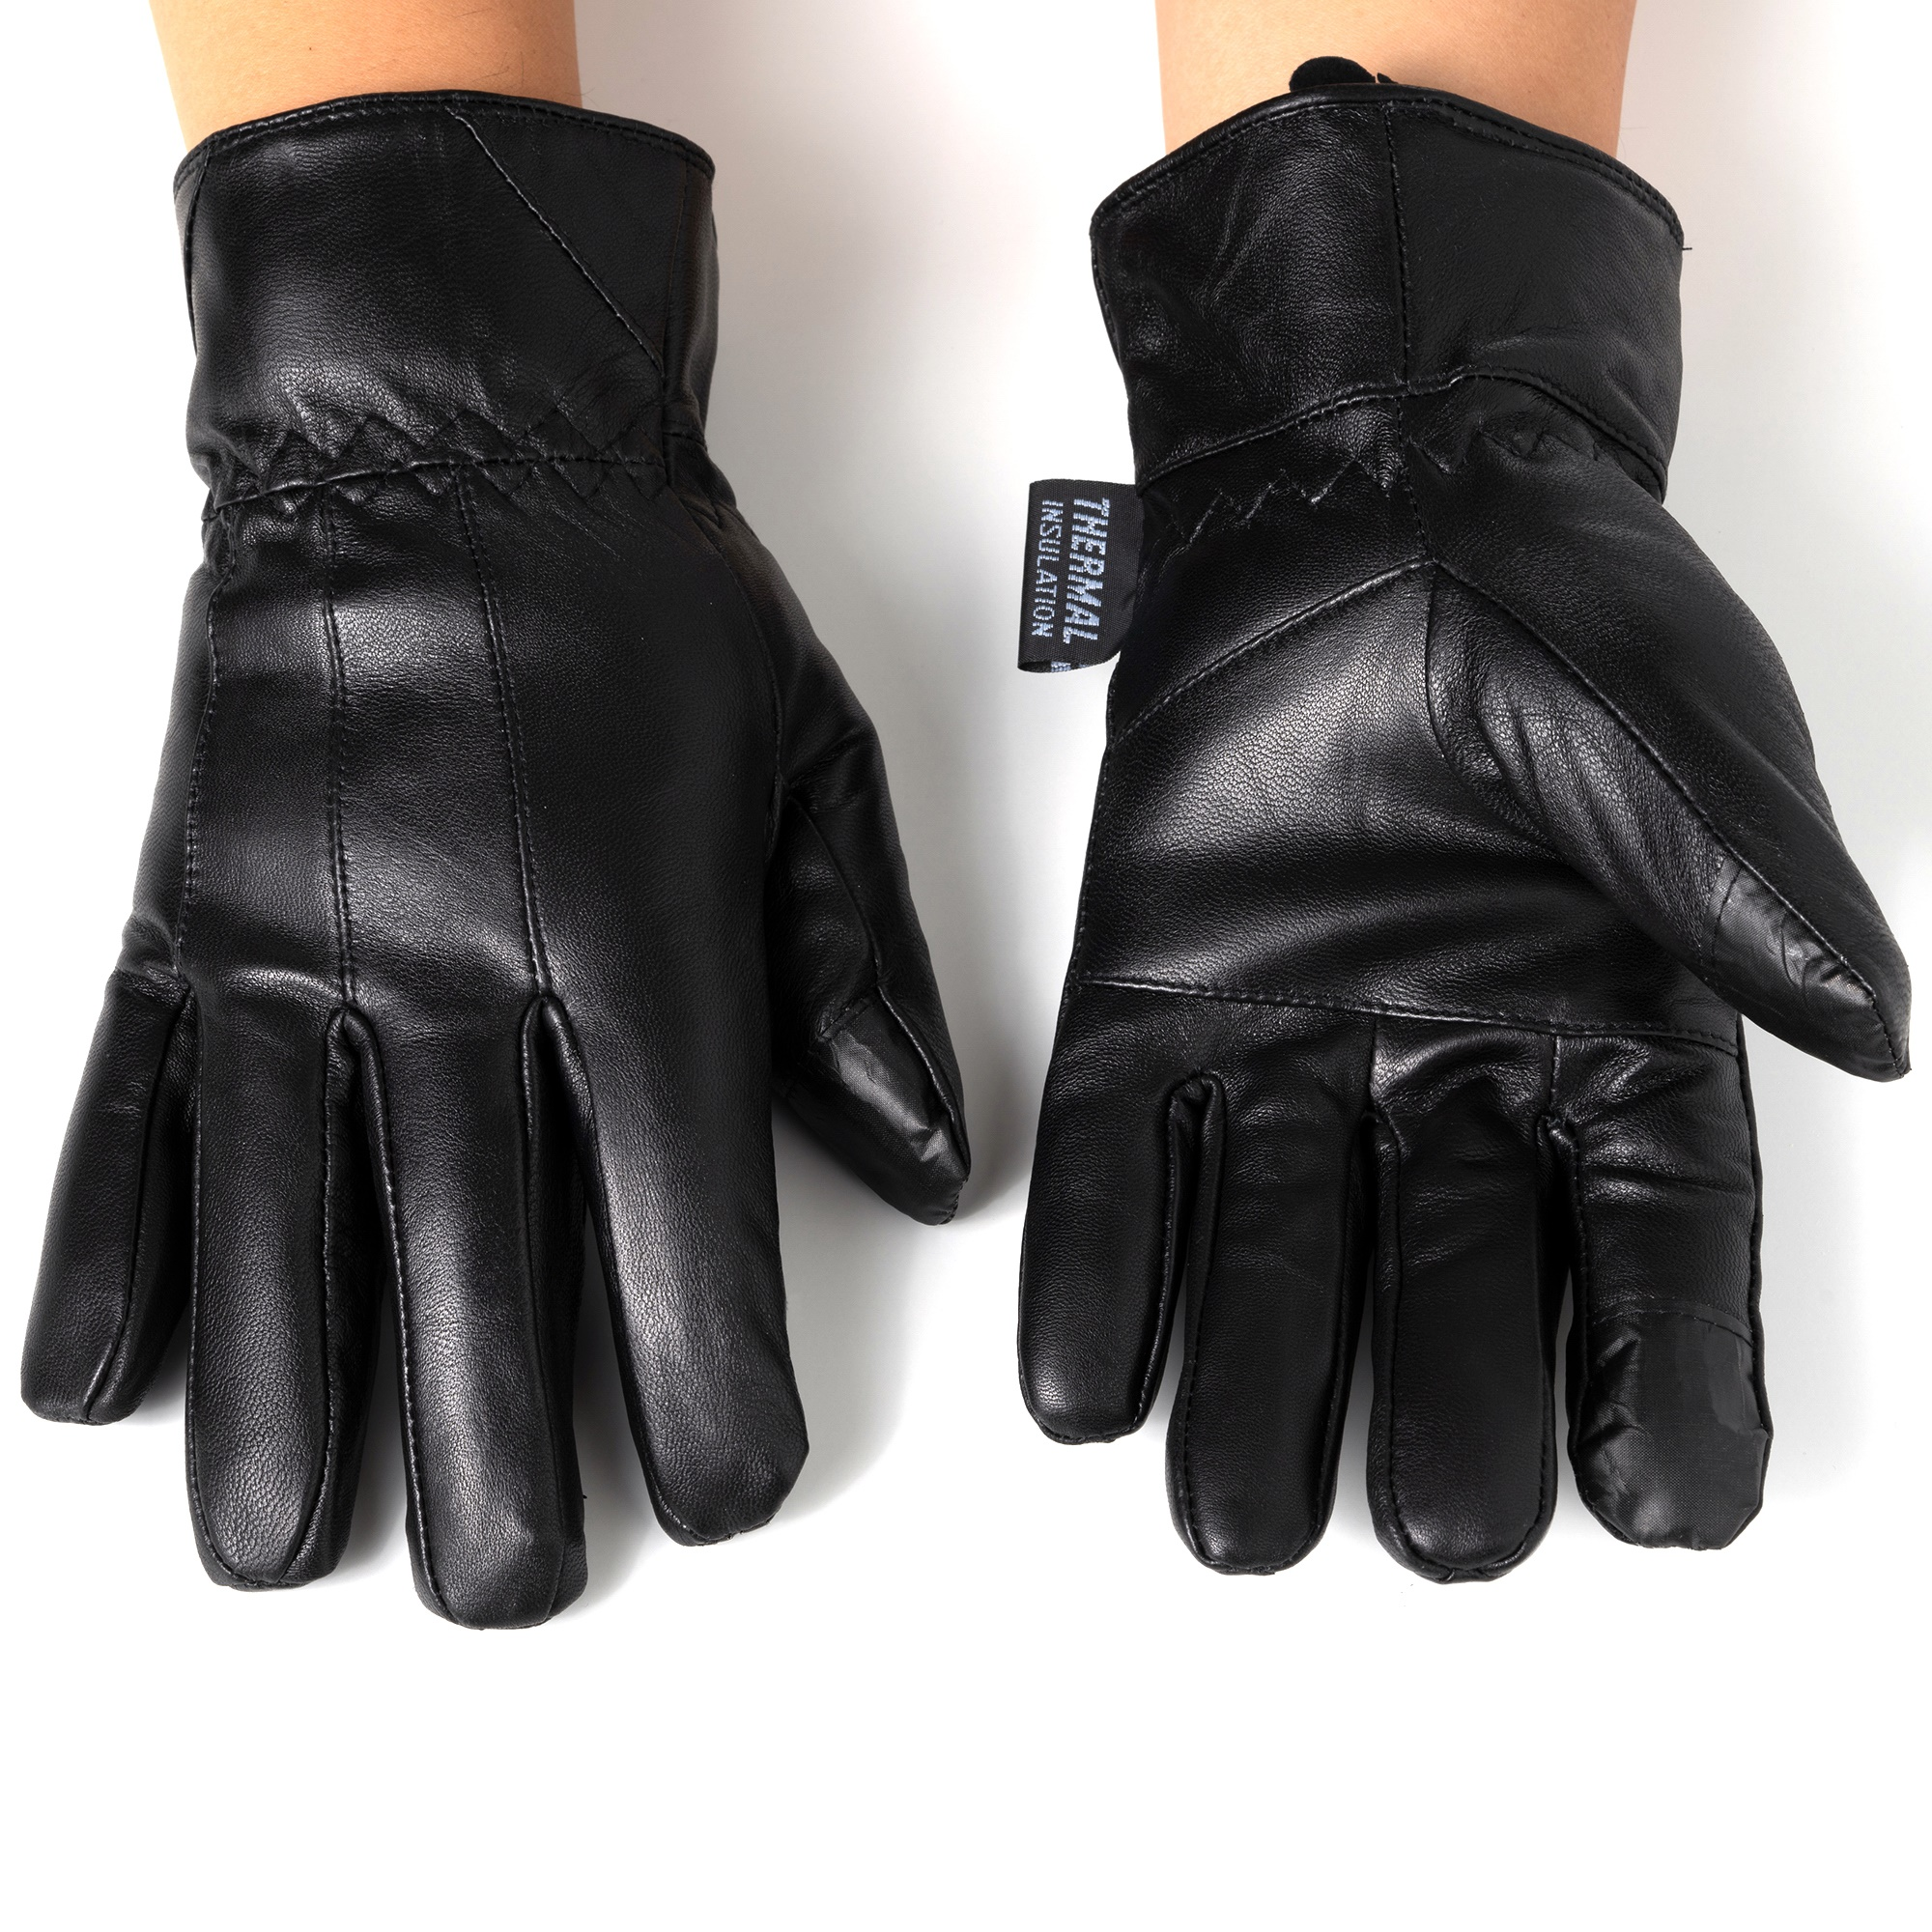 Alpine-Swiss-Mens-Touch-Screen-Gloves-Leather-Thermal-Lined-Phone-Texting-Gloves thumbnail 15